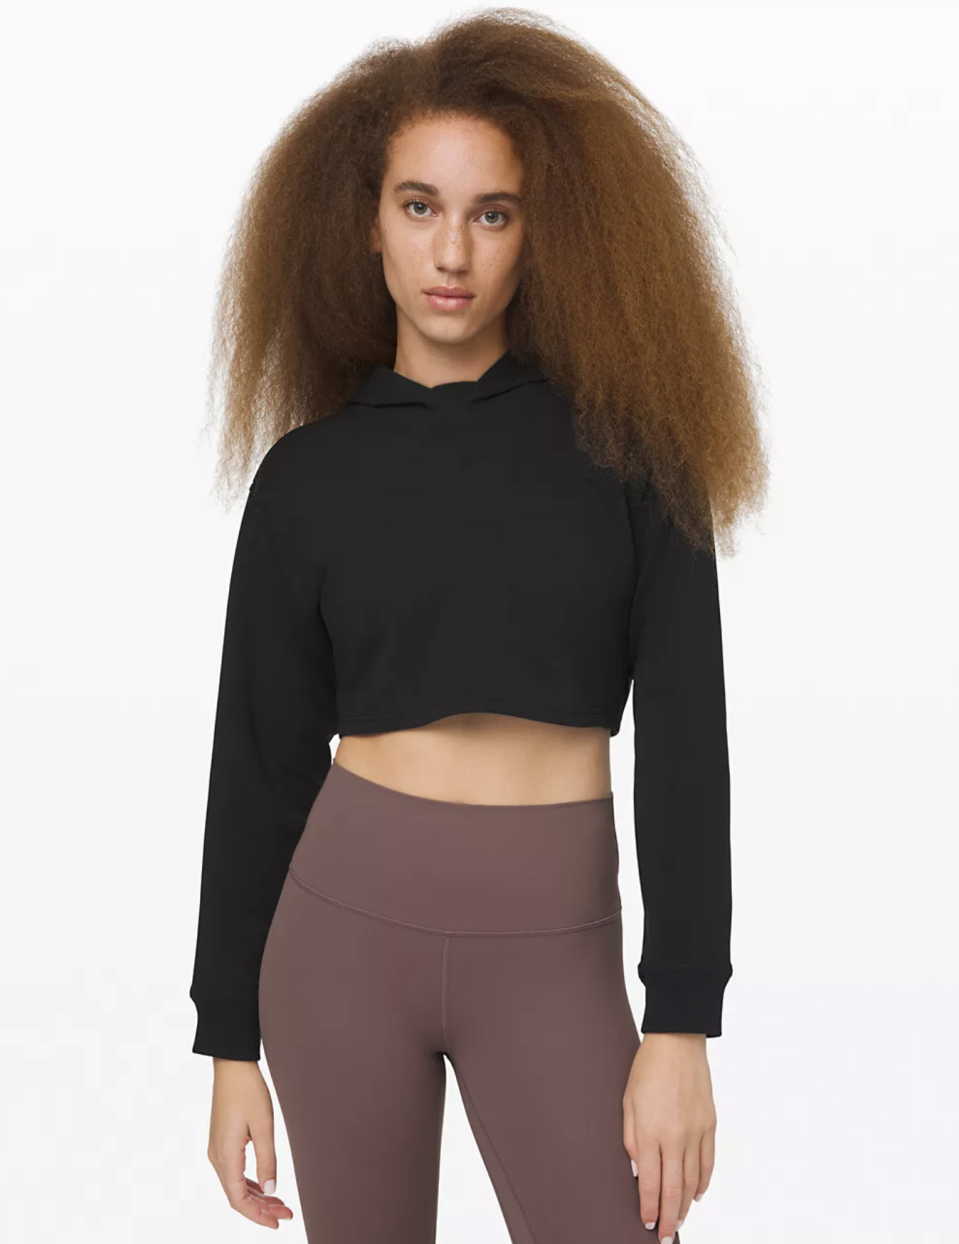 """<p><strong>Lululemon</strong></p><p>lululemon.com</p><p><a href=""""https://go.redirectingat.com?id=74968X1596630&url=https%3A%2F%2Fshop.lululemon.com%2Fp%2Fwomens-outerwear%2FLA-All-Yours-Cropped-Hoodie-MD%2F_%2Fprod10300086%3Fcolor%3D0001&sref=https%3A%2F%2Fwww.seventeen.com%2Ffashion%2Fg30519407%2Fdoes-lululemon-have-sales%2F"""" rel=""""nofollow noopener"""" target=""""_blank"""" data-ylk=""""slk:Shop Now"""" class=""""link rapid-noclick-resp"""">Shop Now</a></p><p><strong><strong><del>$98</del> $74 (25% off)</strong></strong></p><p>Meet your new go-everywhere crop top. She's a minimalistic little beauty that'll work with every pair of pants you own.</p>"""